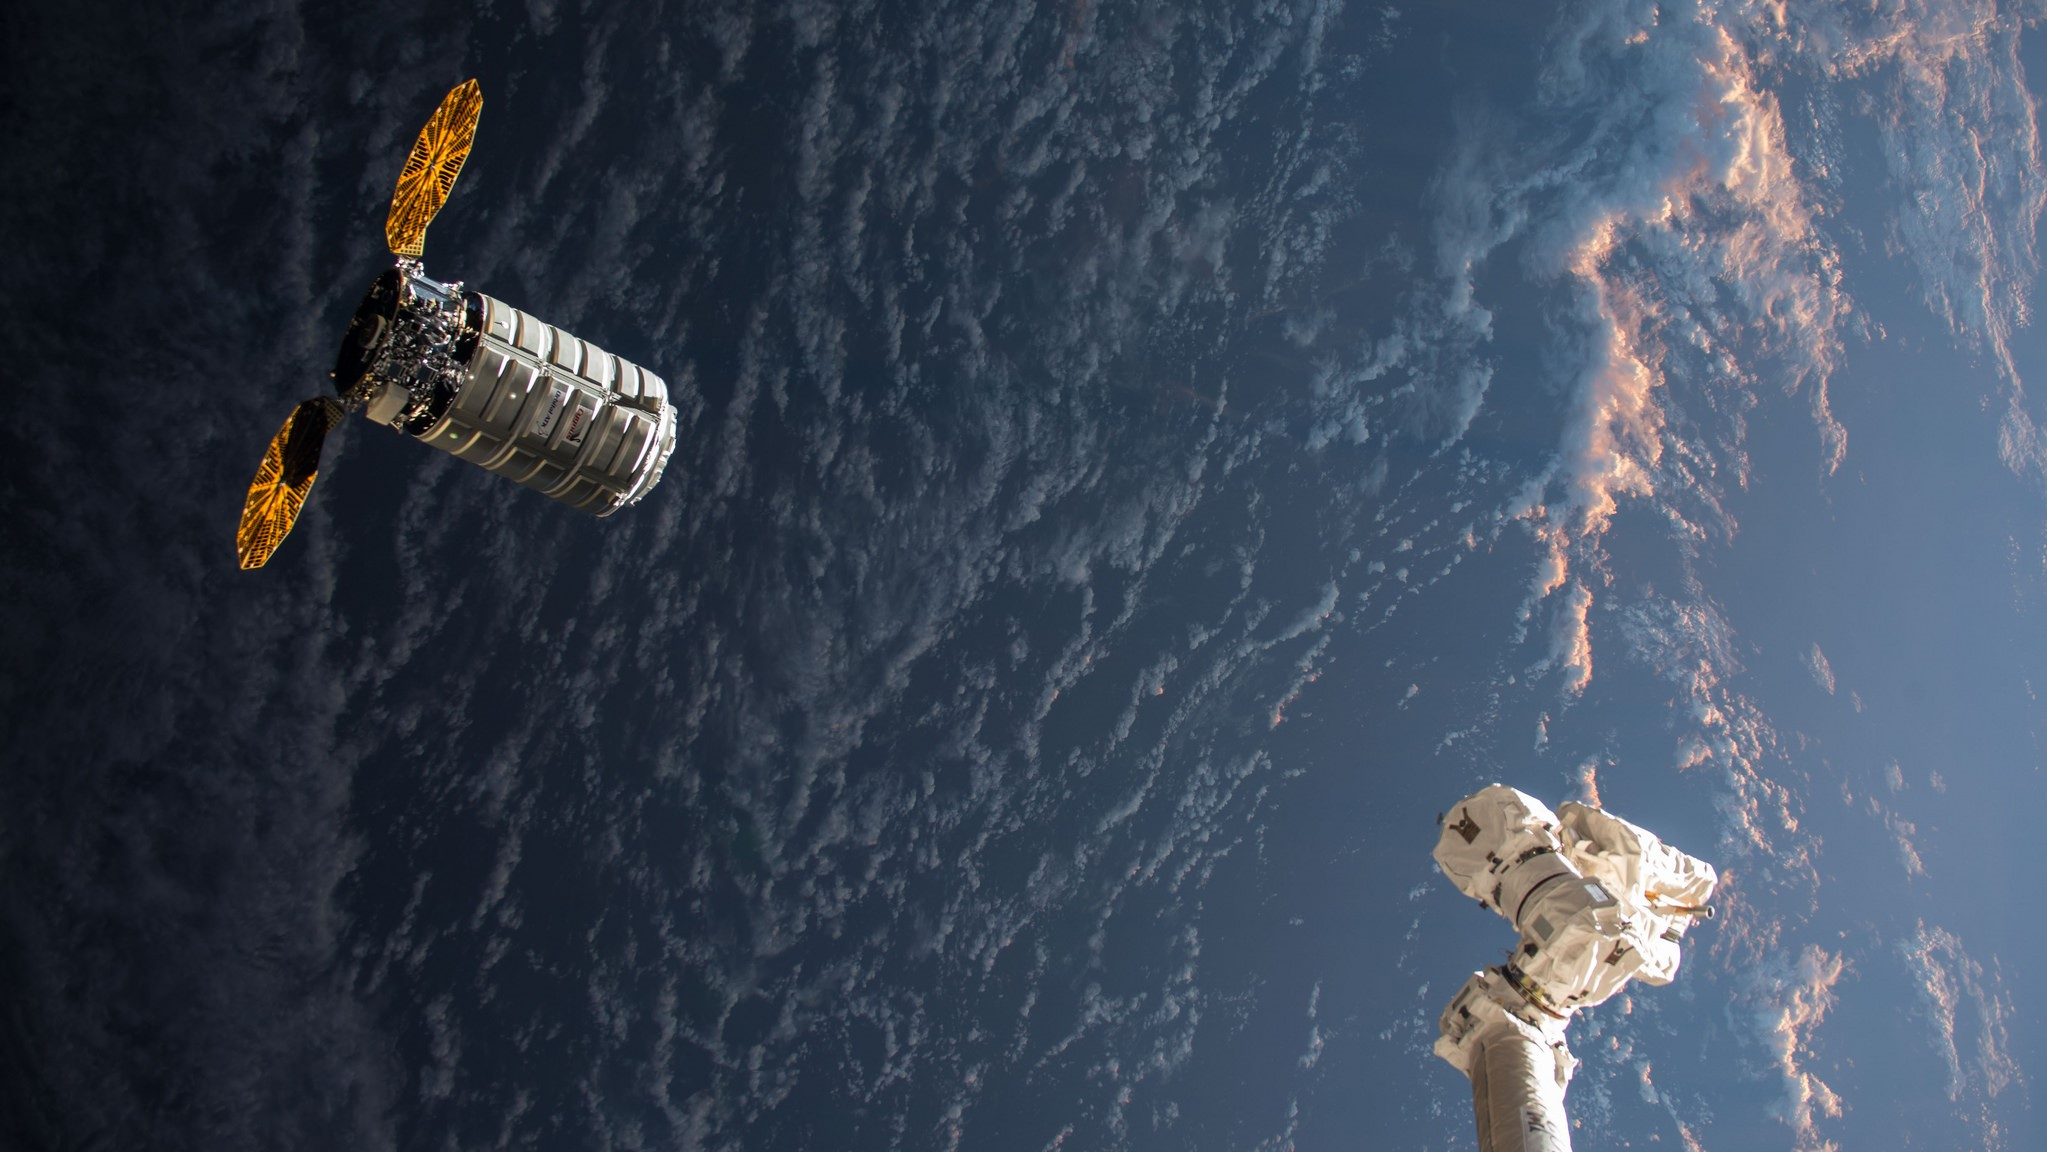 The OA-8 Cygnus approaches the ISS. Credit: NASA